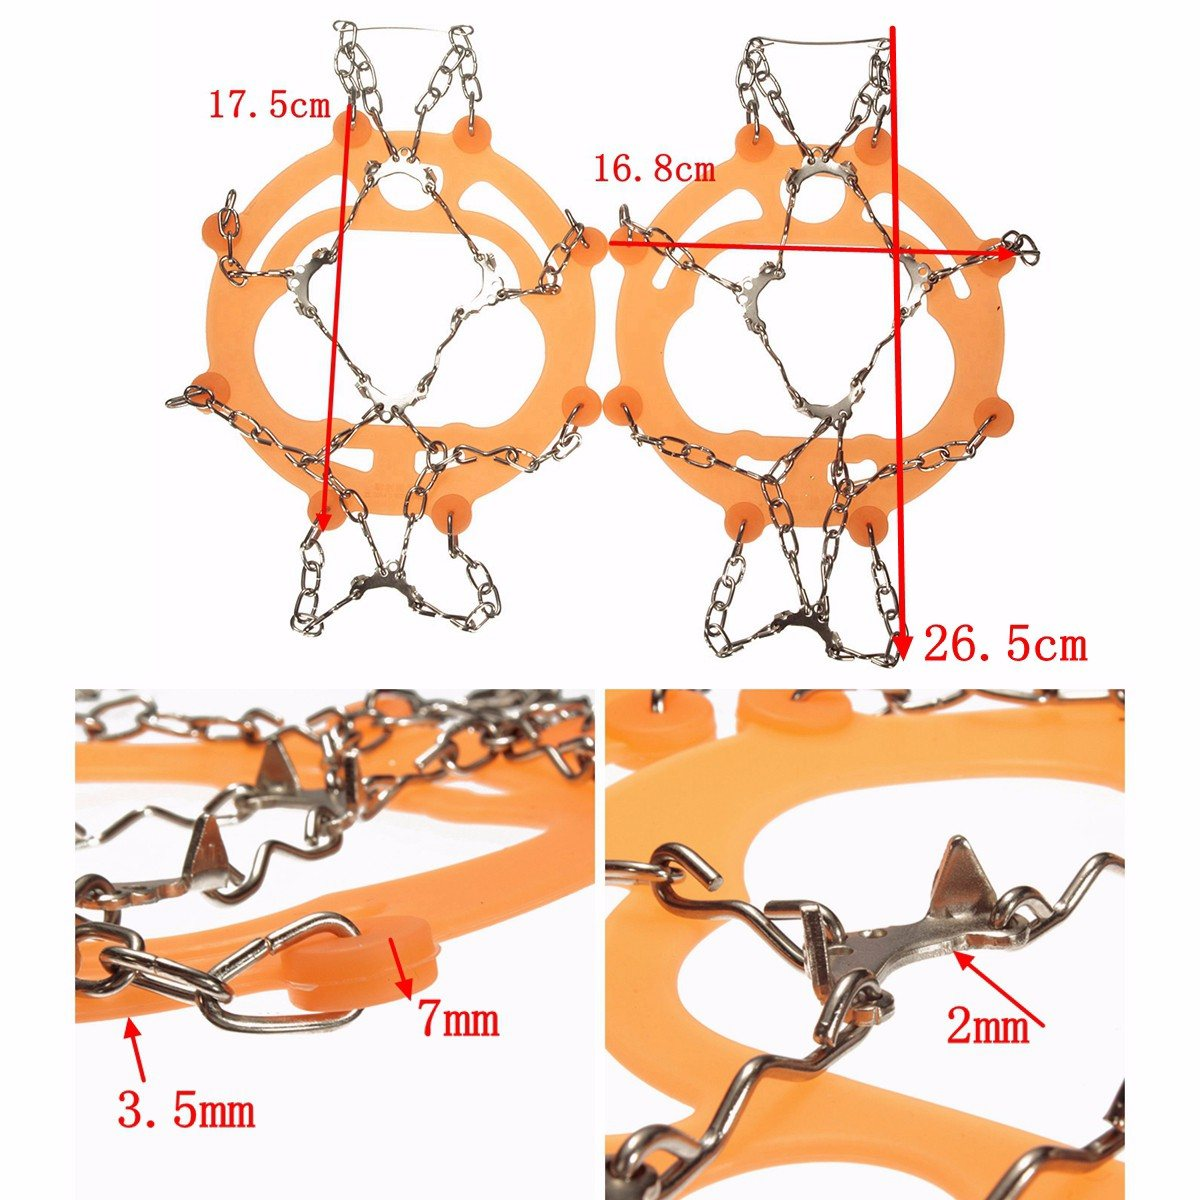 BSAID 1 Pair Snow Ice Grips Size L Camping Crampons 10-Teeth Slip Climbing Anti-slip Ice Gripper Chain Spikes For Shoes Boots